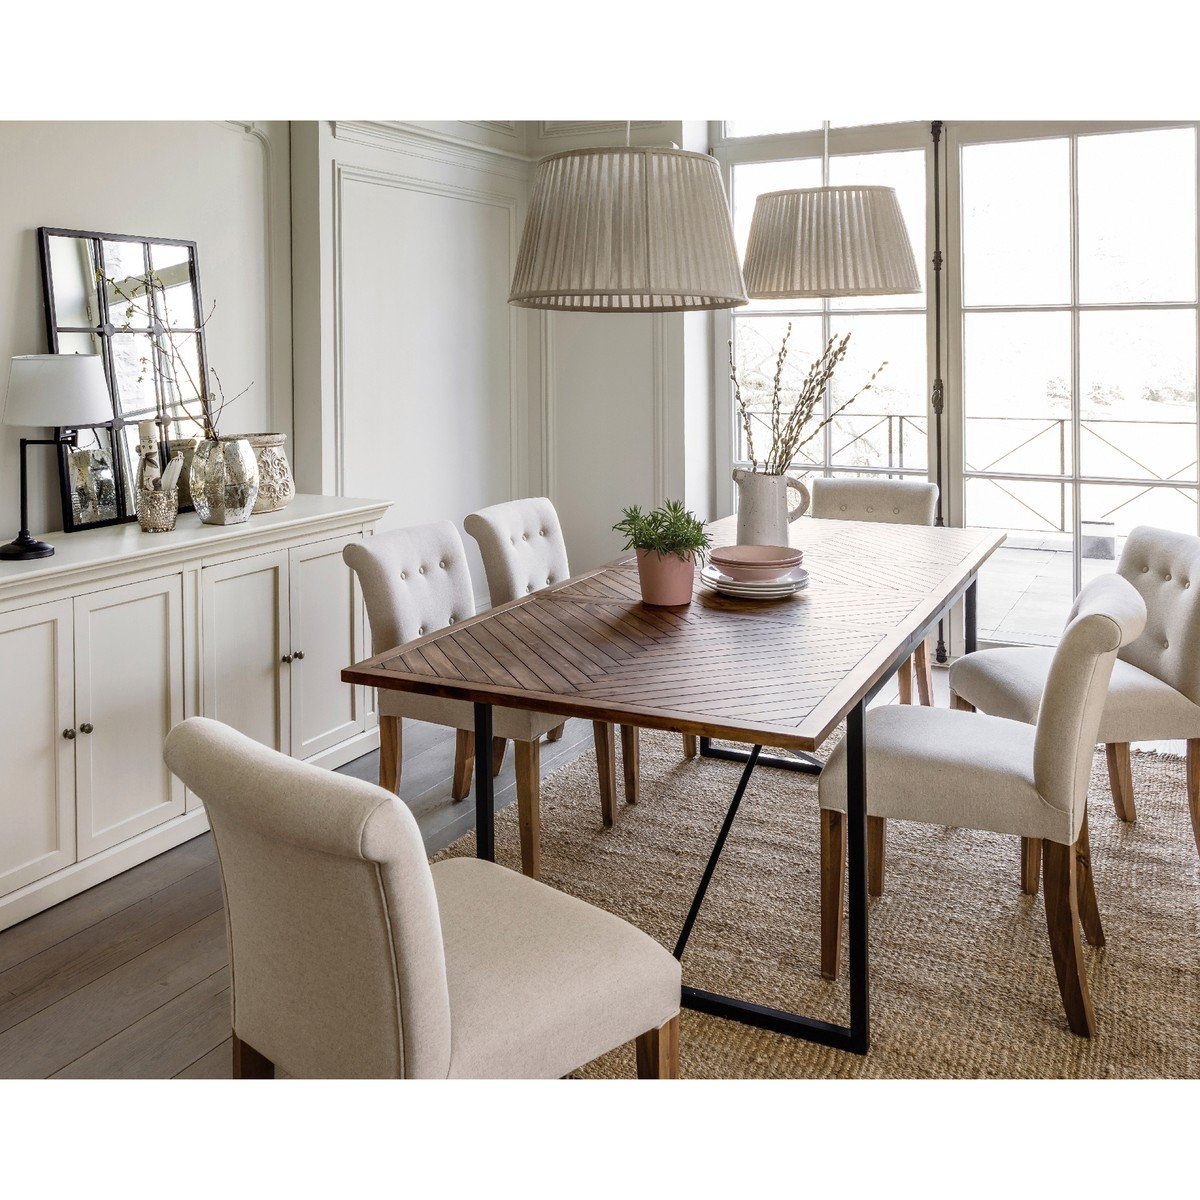 Sears has kitchen furniture to create a relaxing and inviting feel in your space Find dining room furniture thats as comfy as it is stylish